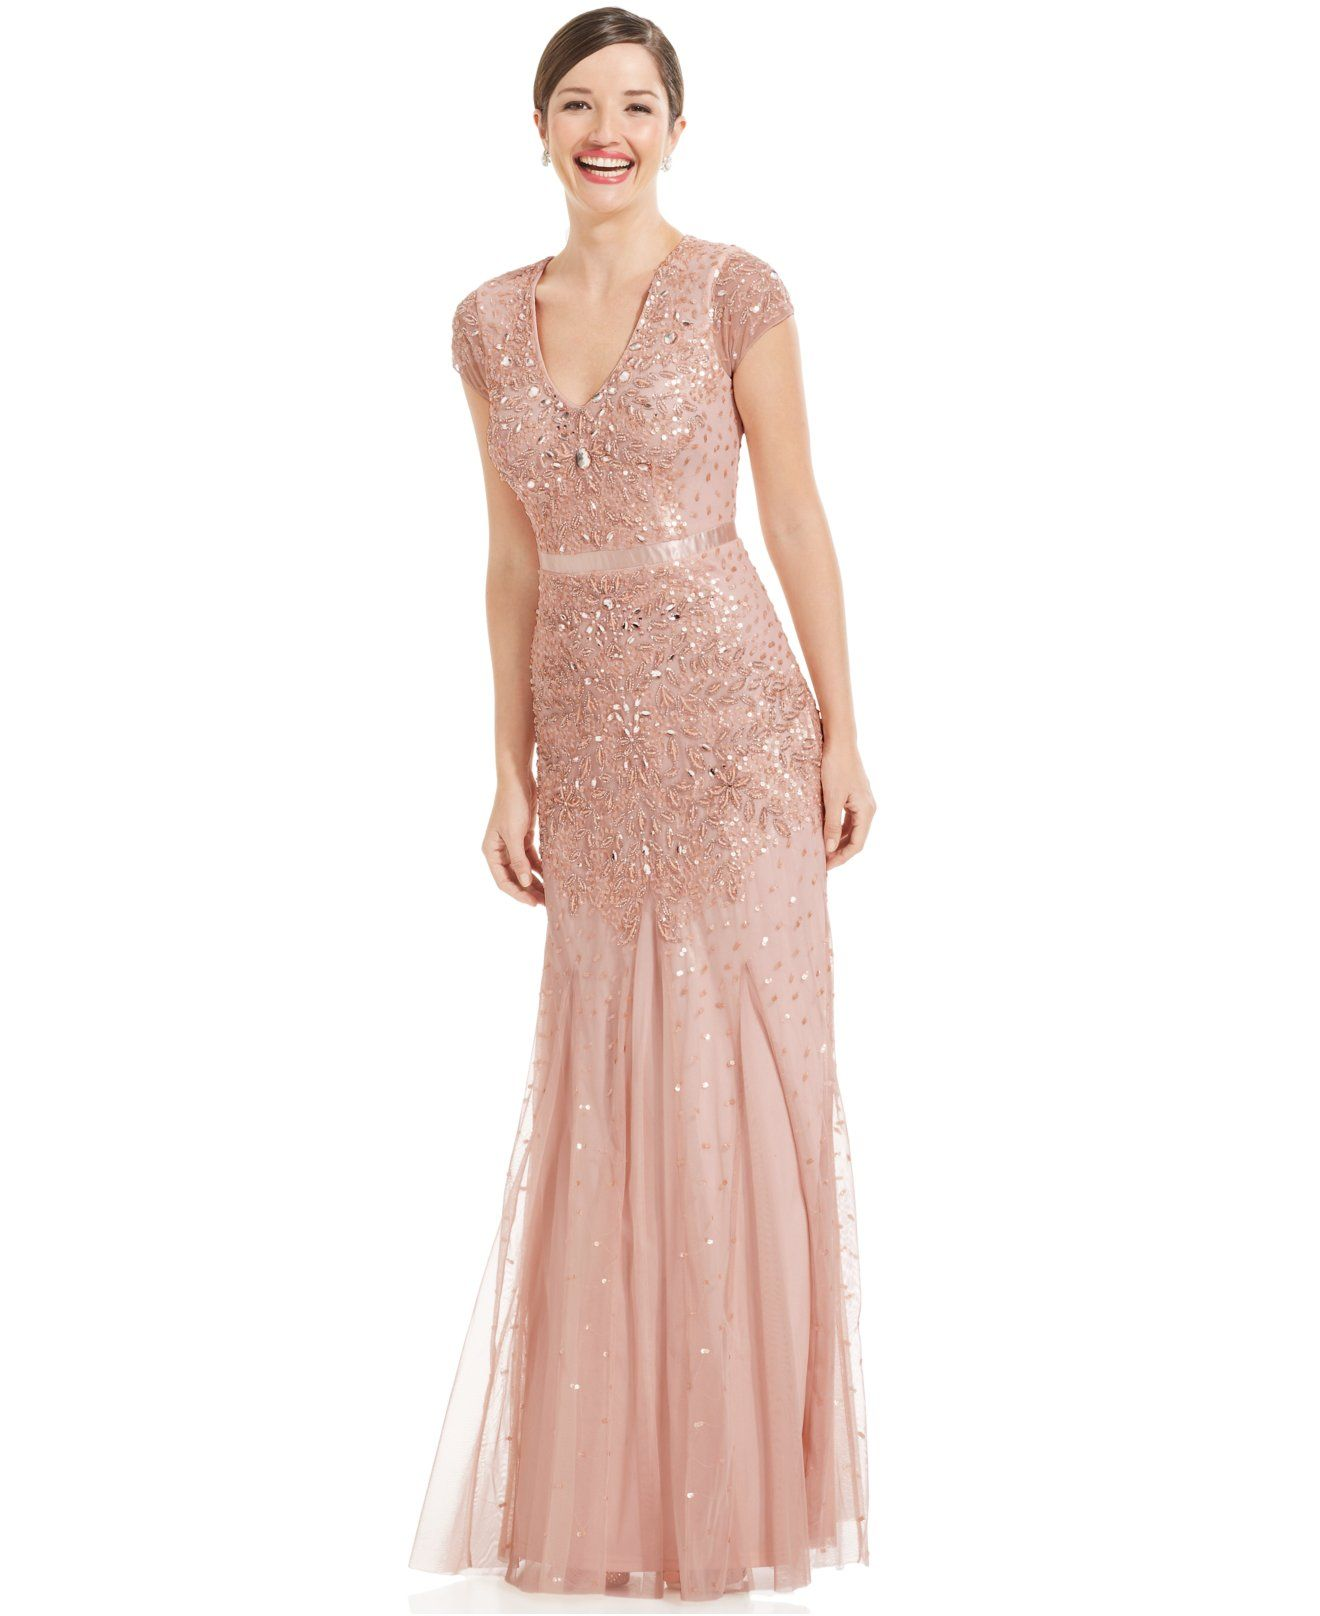 Adrianna Papell Cap-Sleeve Embellished Gown - Dresses - Women ...